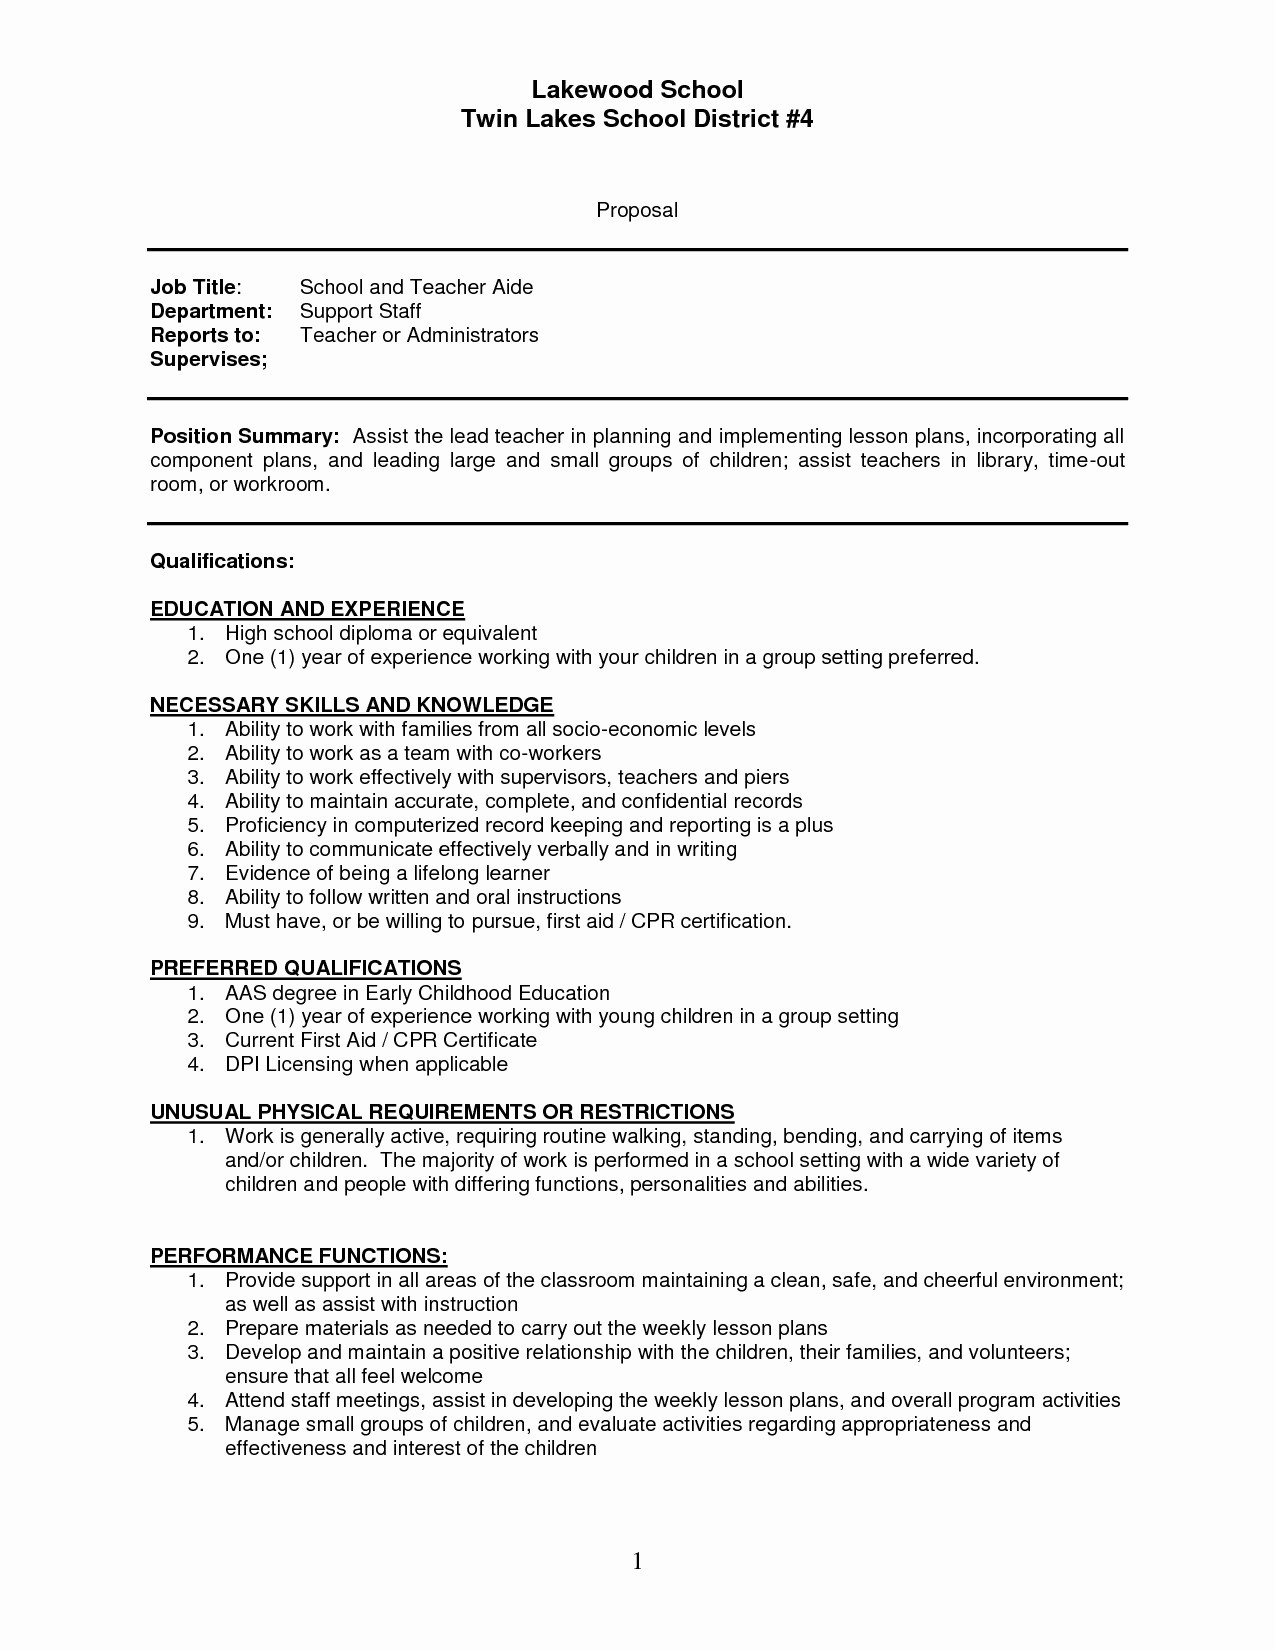 Babysitter Resume Description - Babysitter Resume Description Fresh Resume for Babysitter Fresh